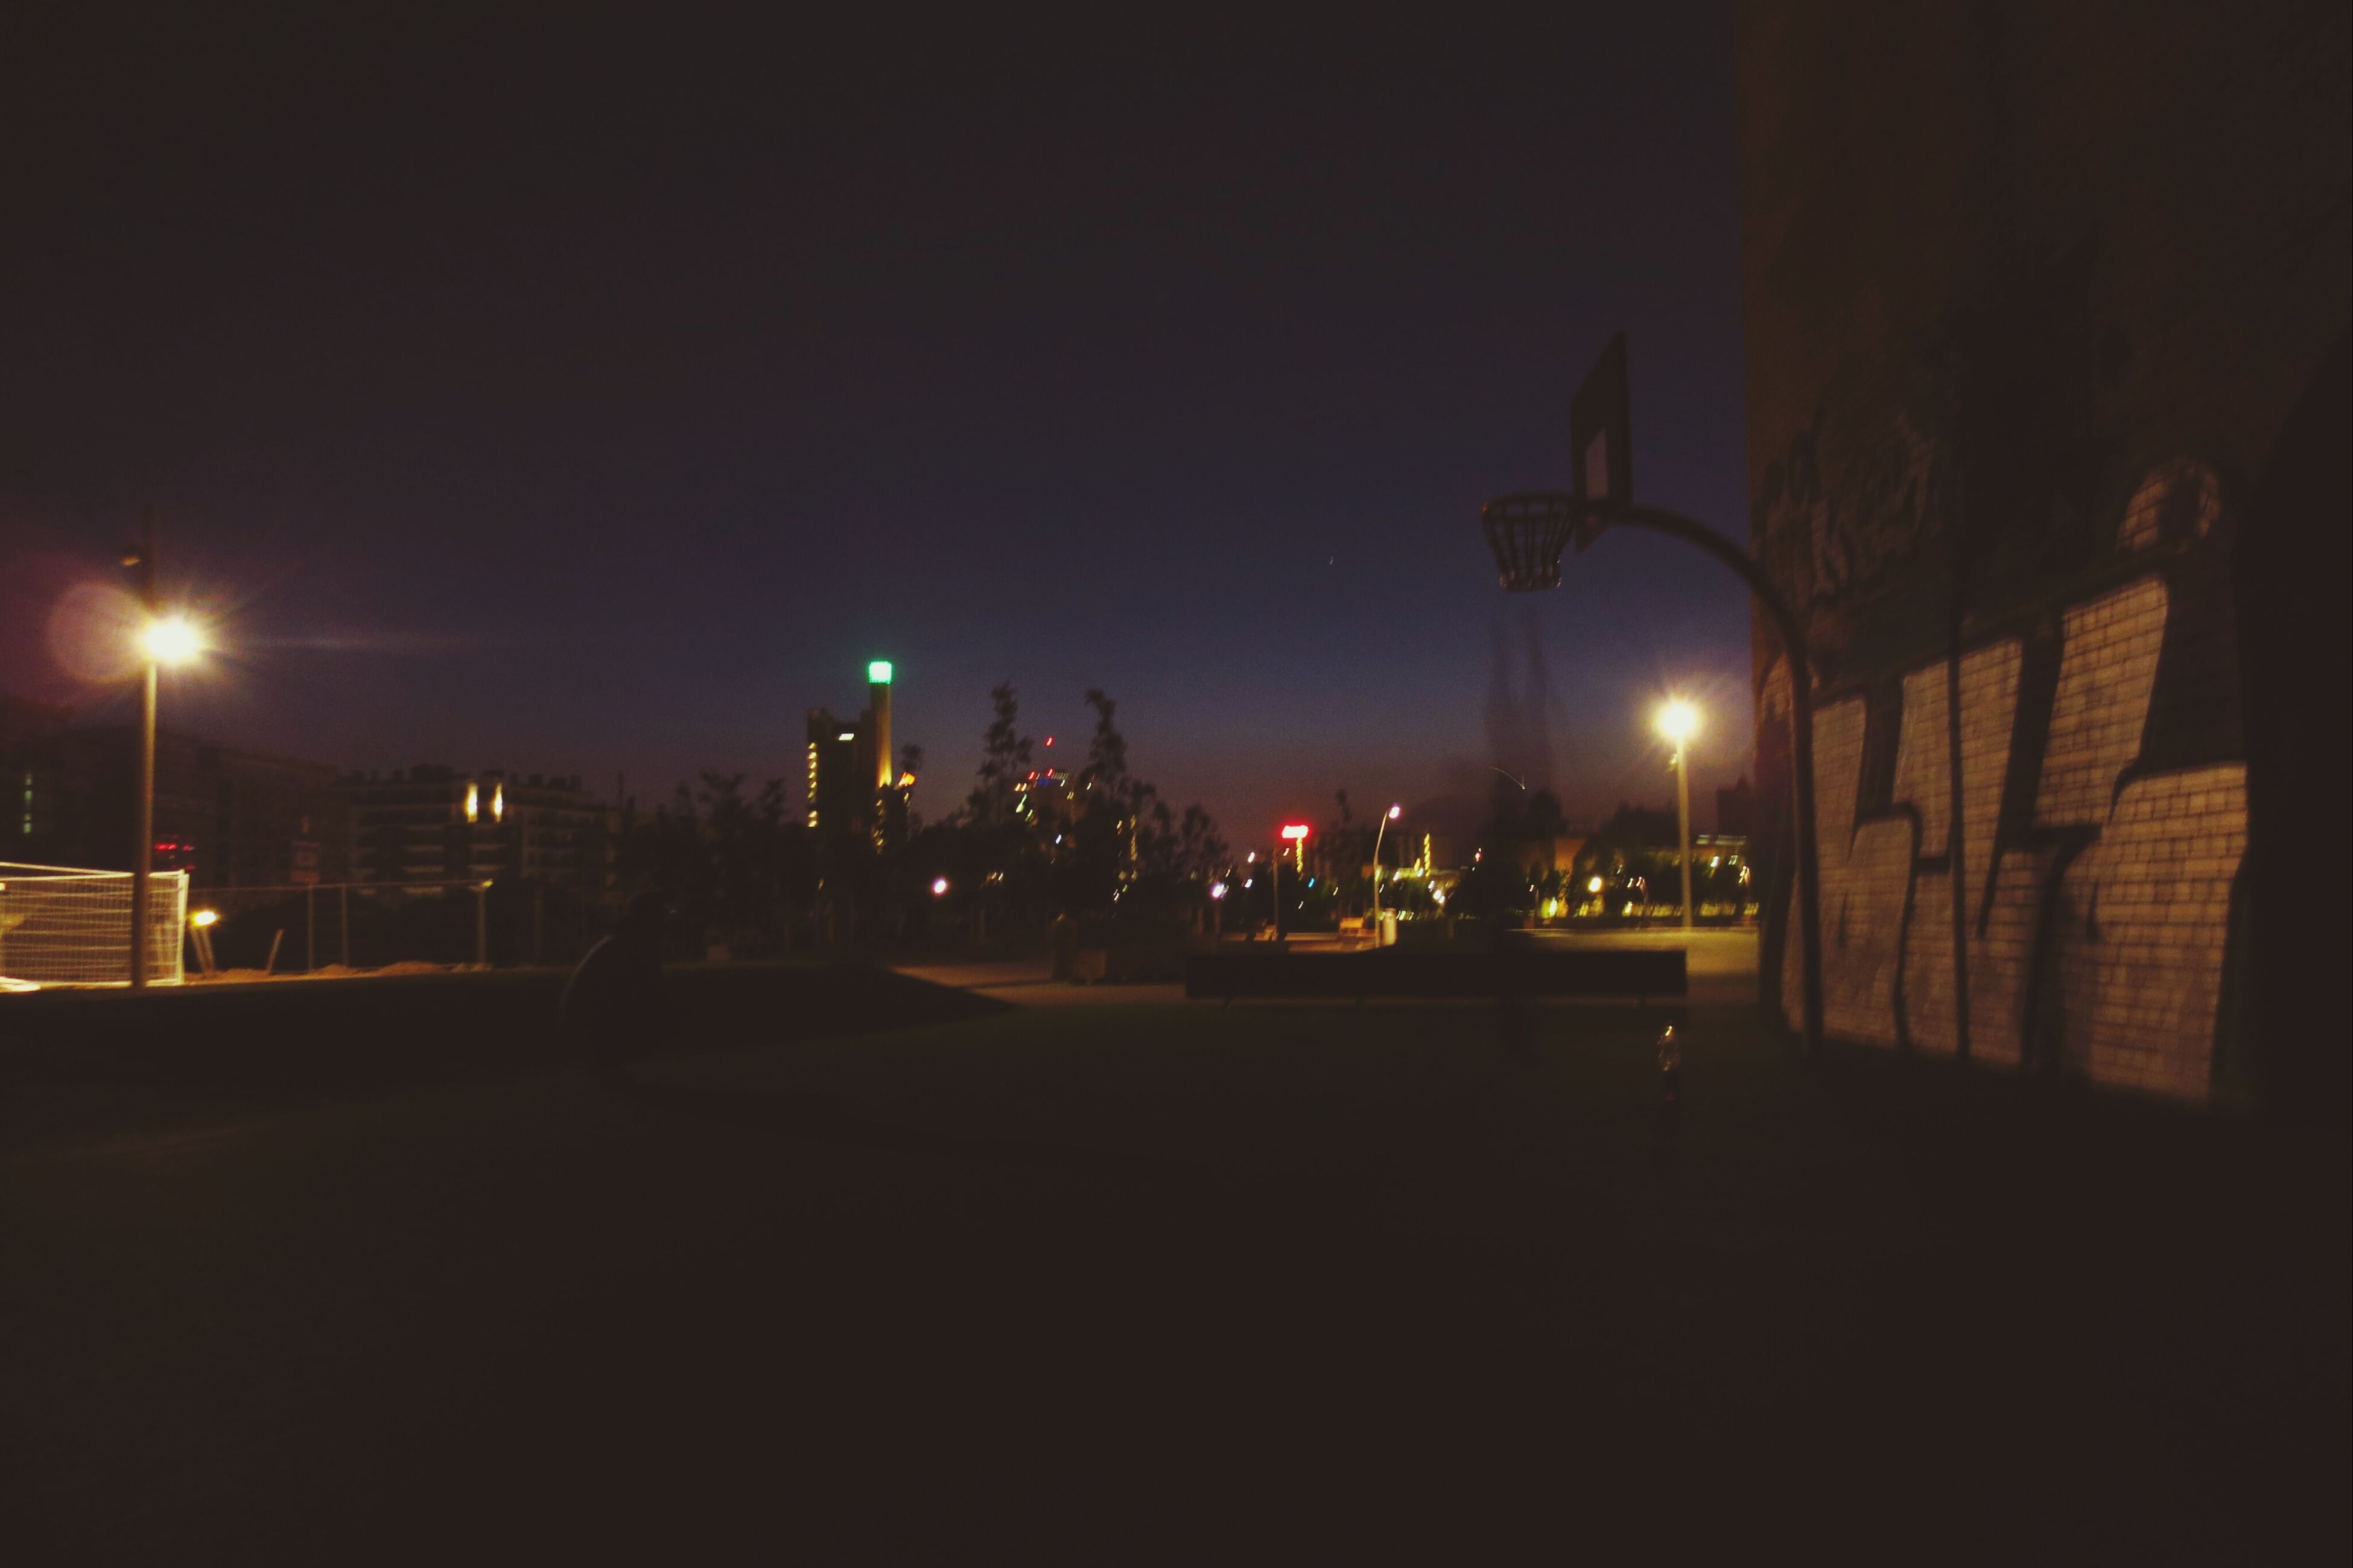 illuminated, night, street light, lighting equipment, building exterior, street, built structure, architecture, clear sky, transportation, city, dark, copy space, road, the way forward, car, outdoors, land vehicle, sky, mode of transport